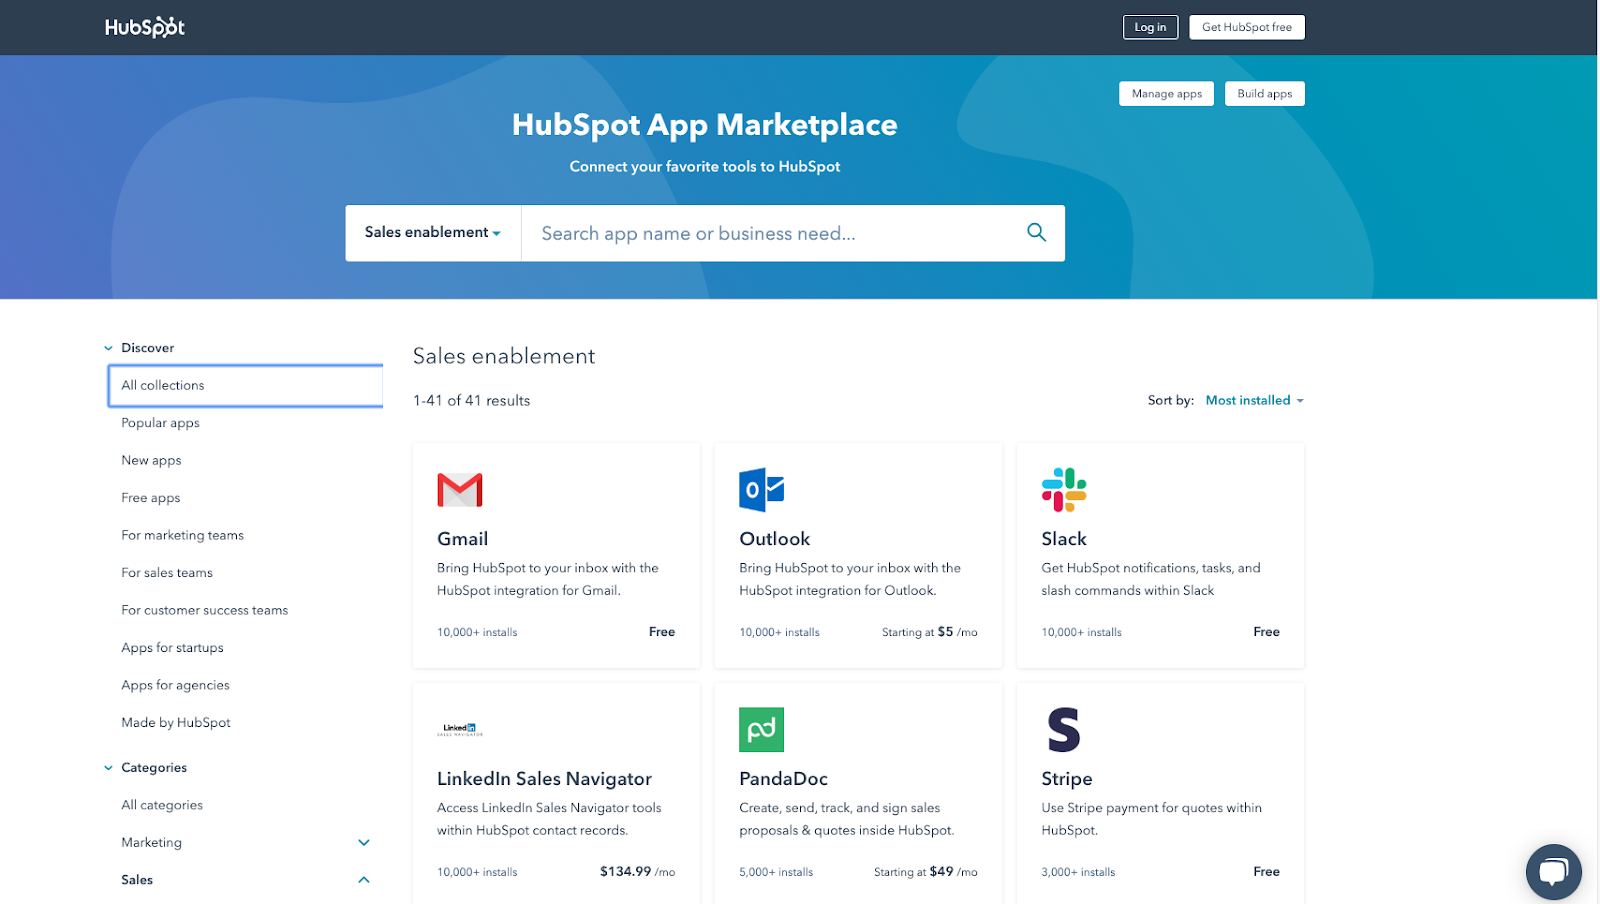 A screenshot of the HubSpot App Marketplace showing the top sales enablement apps: Gmail, Outlook, Slack, LinkedIn Sales Navigator, PandaDoc and Stripe.